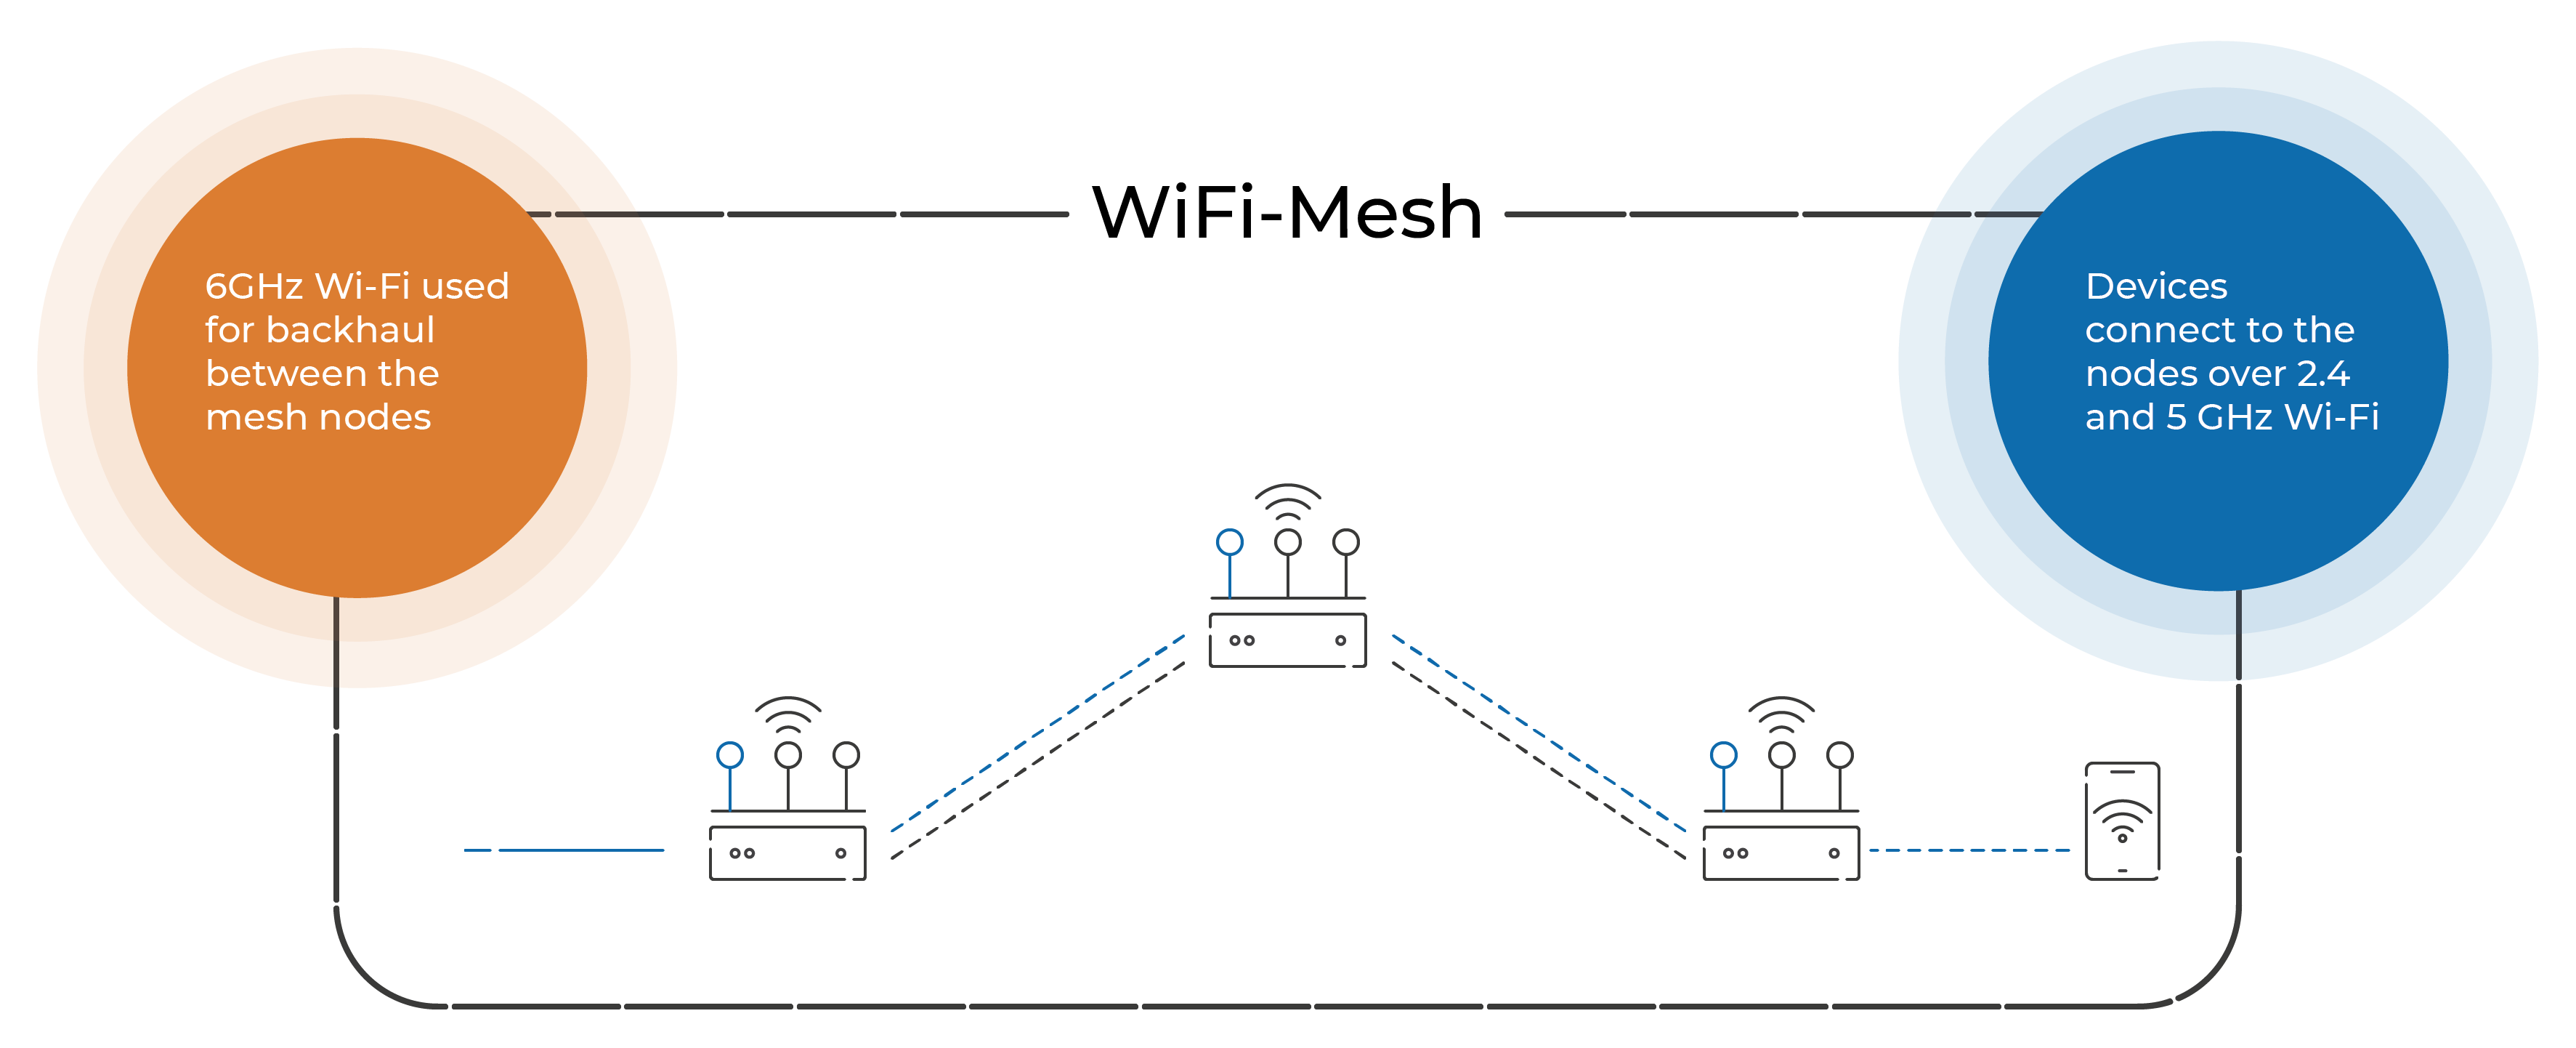 6E: The ideal wireless spectrum for dedicated connection between the nodes